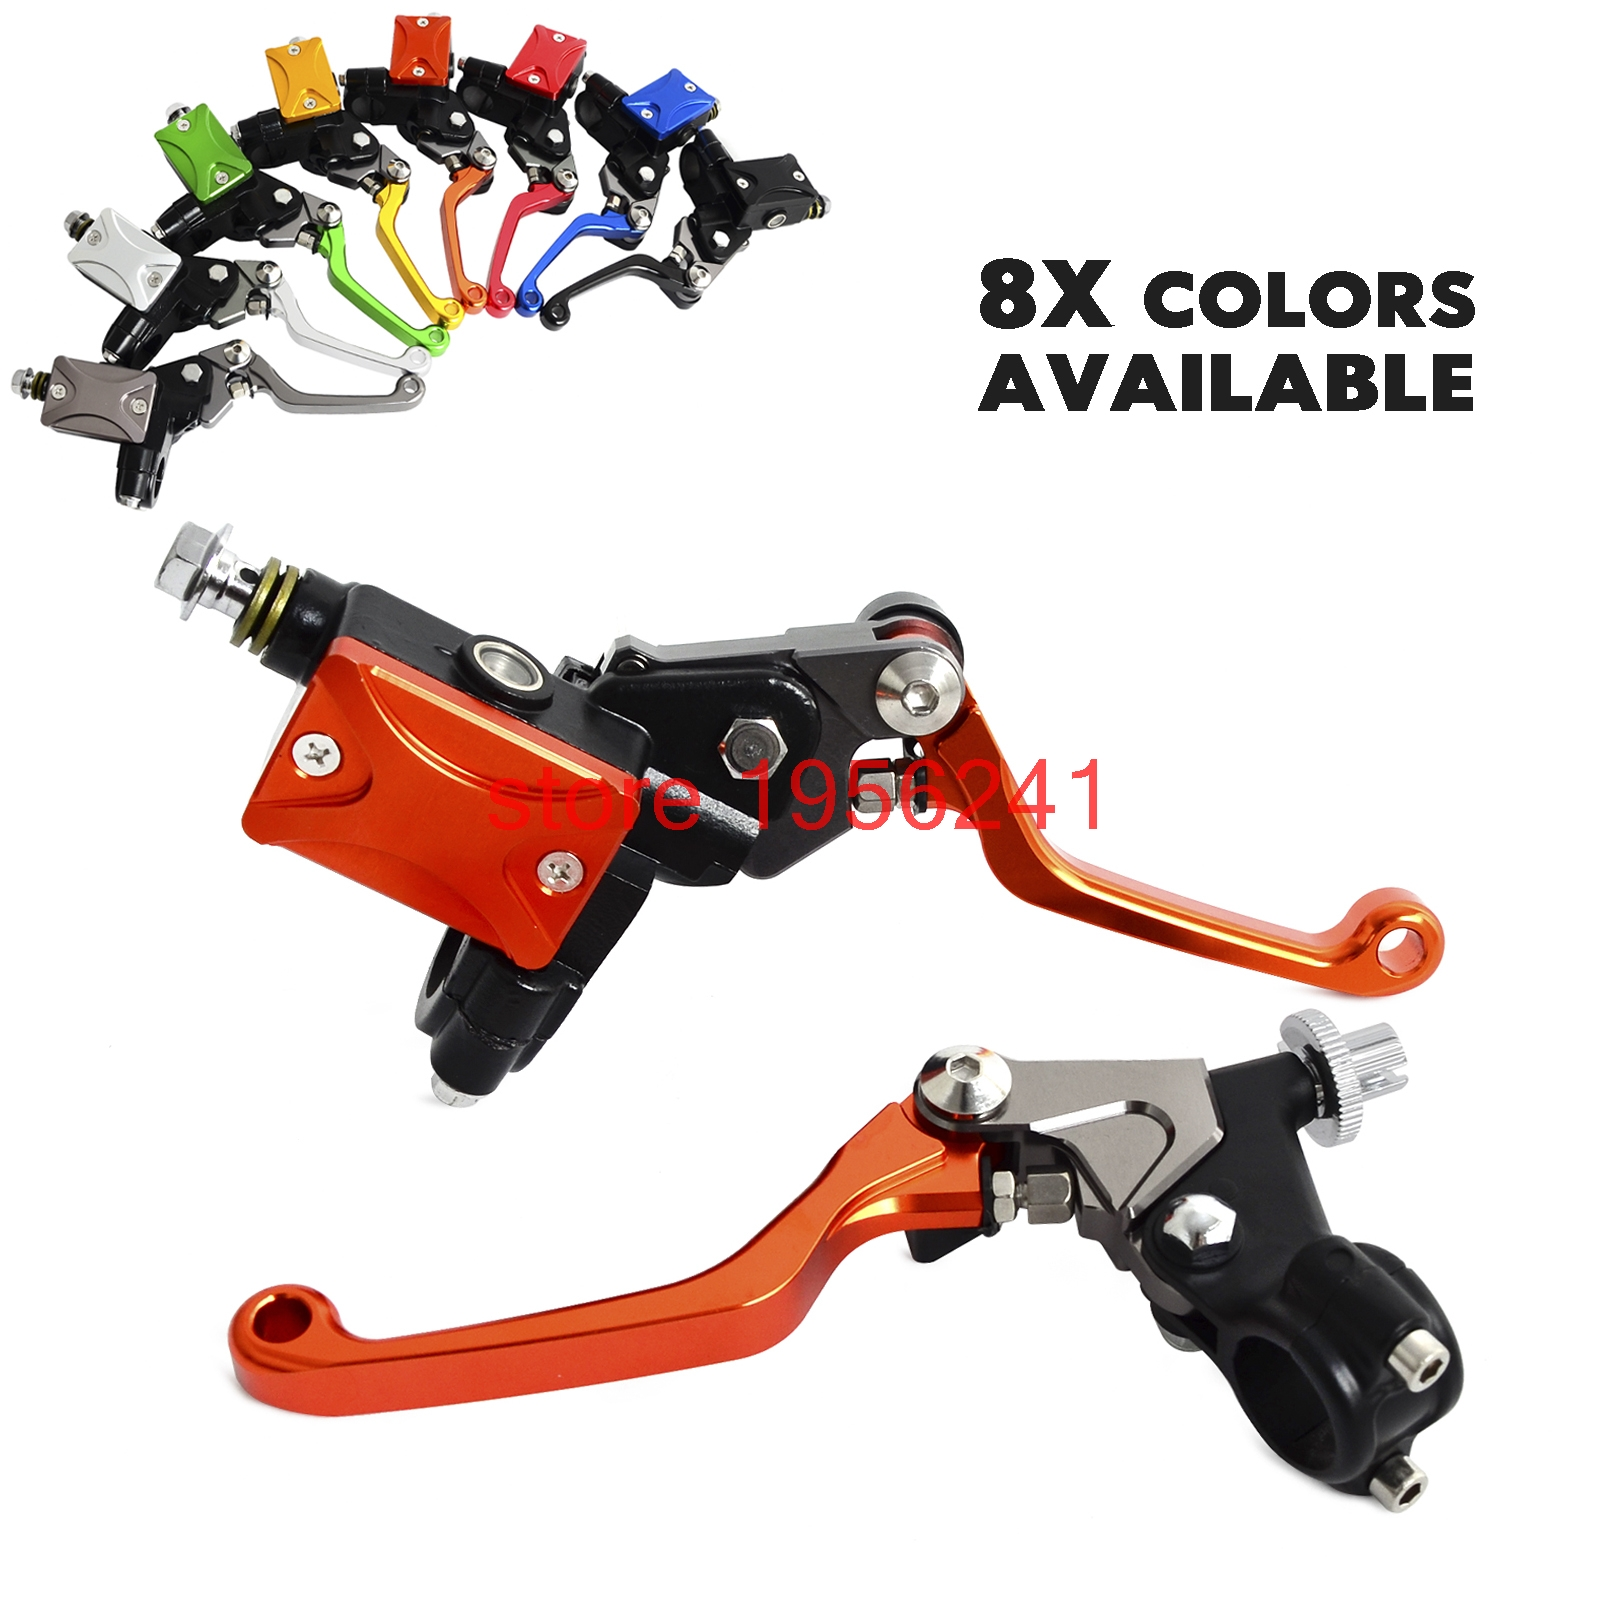 H2CNC Hydraulic Brake & Cable Clutch Lever Set Assembly For Honda CRF230F SL230 XR230 XR250 XR400 CRF250L CRF250M CRM250R 7 8 lever brake clutch master cylinder set reservoir for honda crf150r crf250x crf250r crf450r crf450x crf230f sl230 xr250